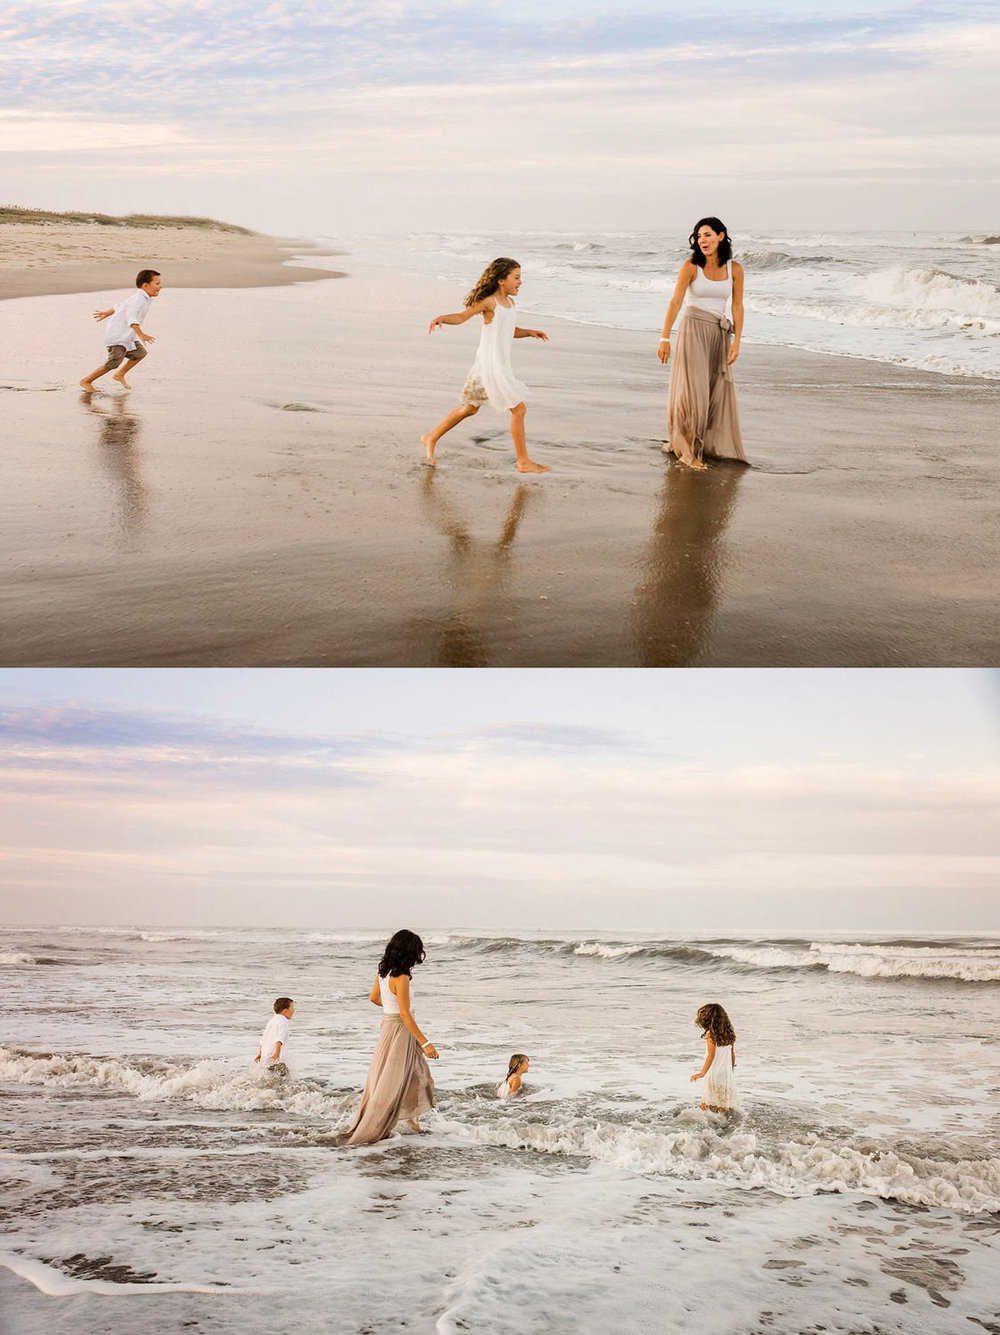 family-plays-in-surf-photos-by-international-award-winning-photographer-melissa-bliss-photography-virginia-beach-norfolk-VA.jpg